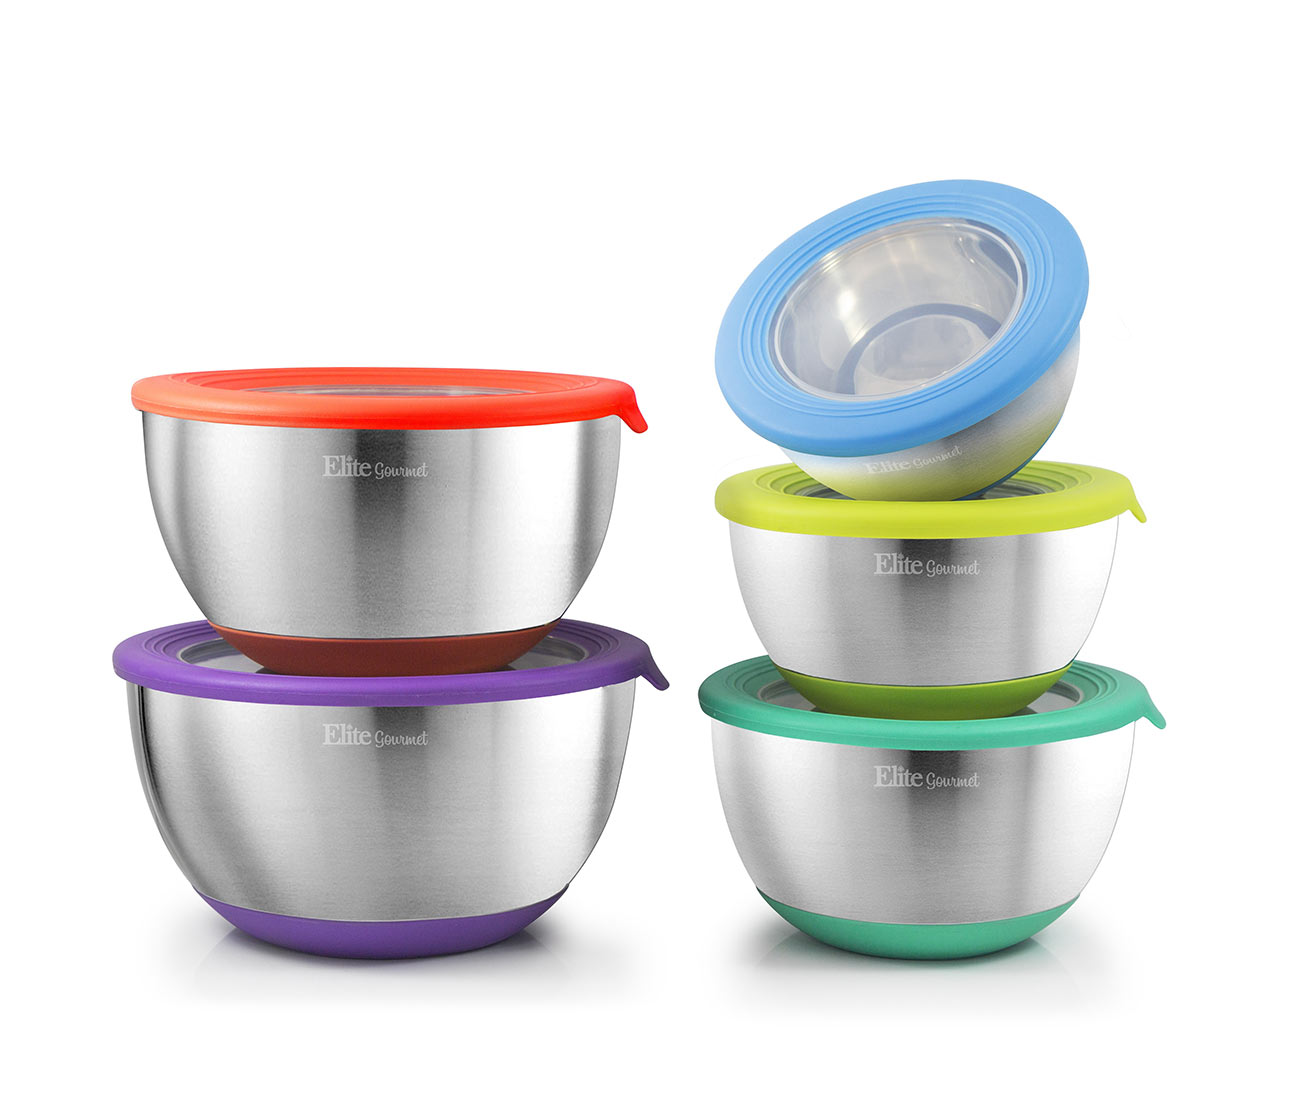 10 Pc. Stainless Steel Mixing Bowl Set